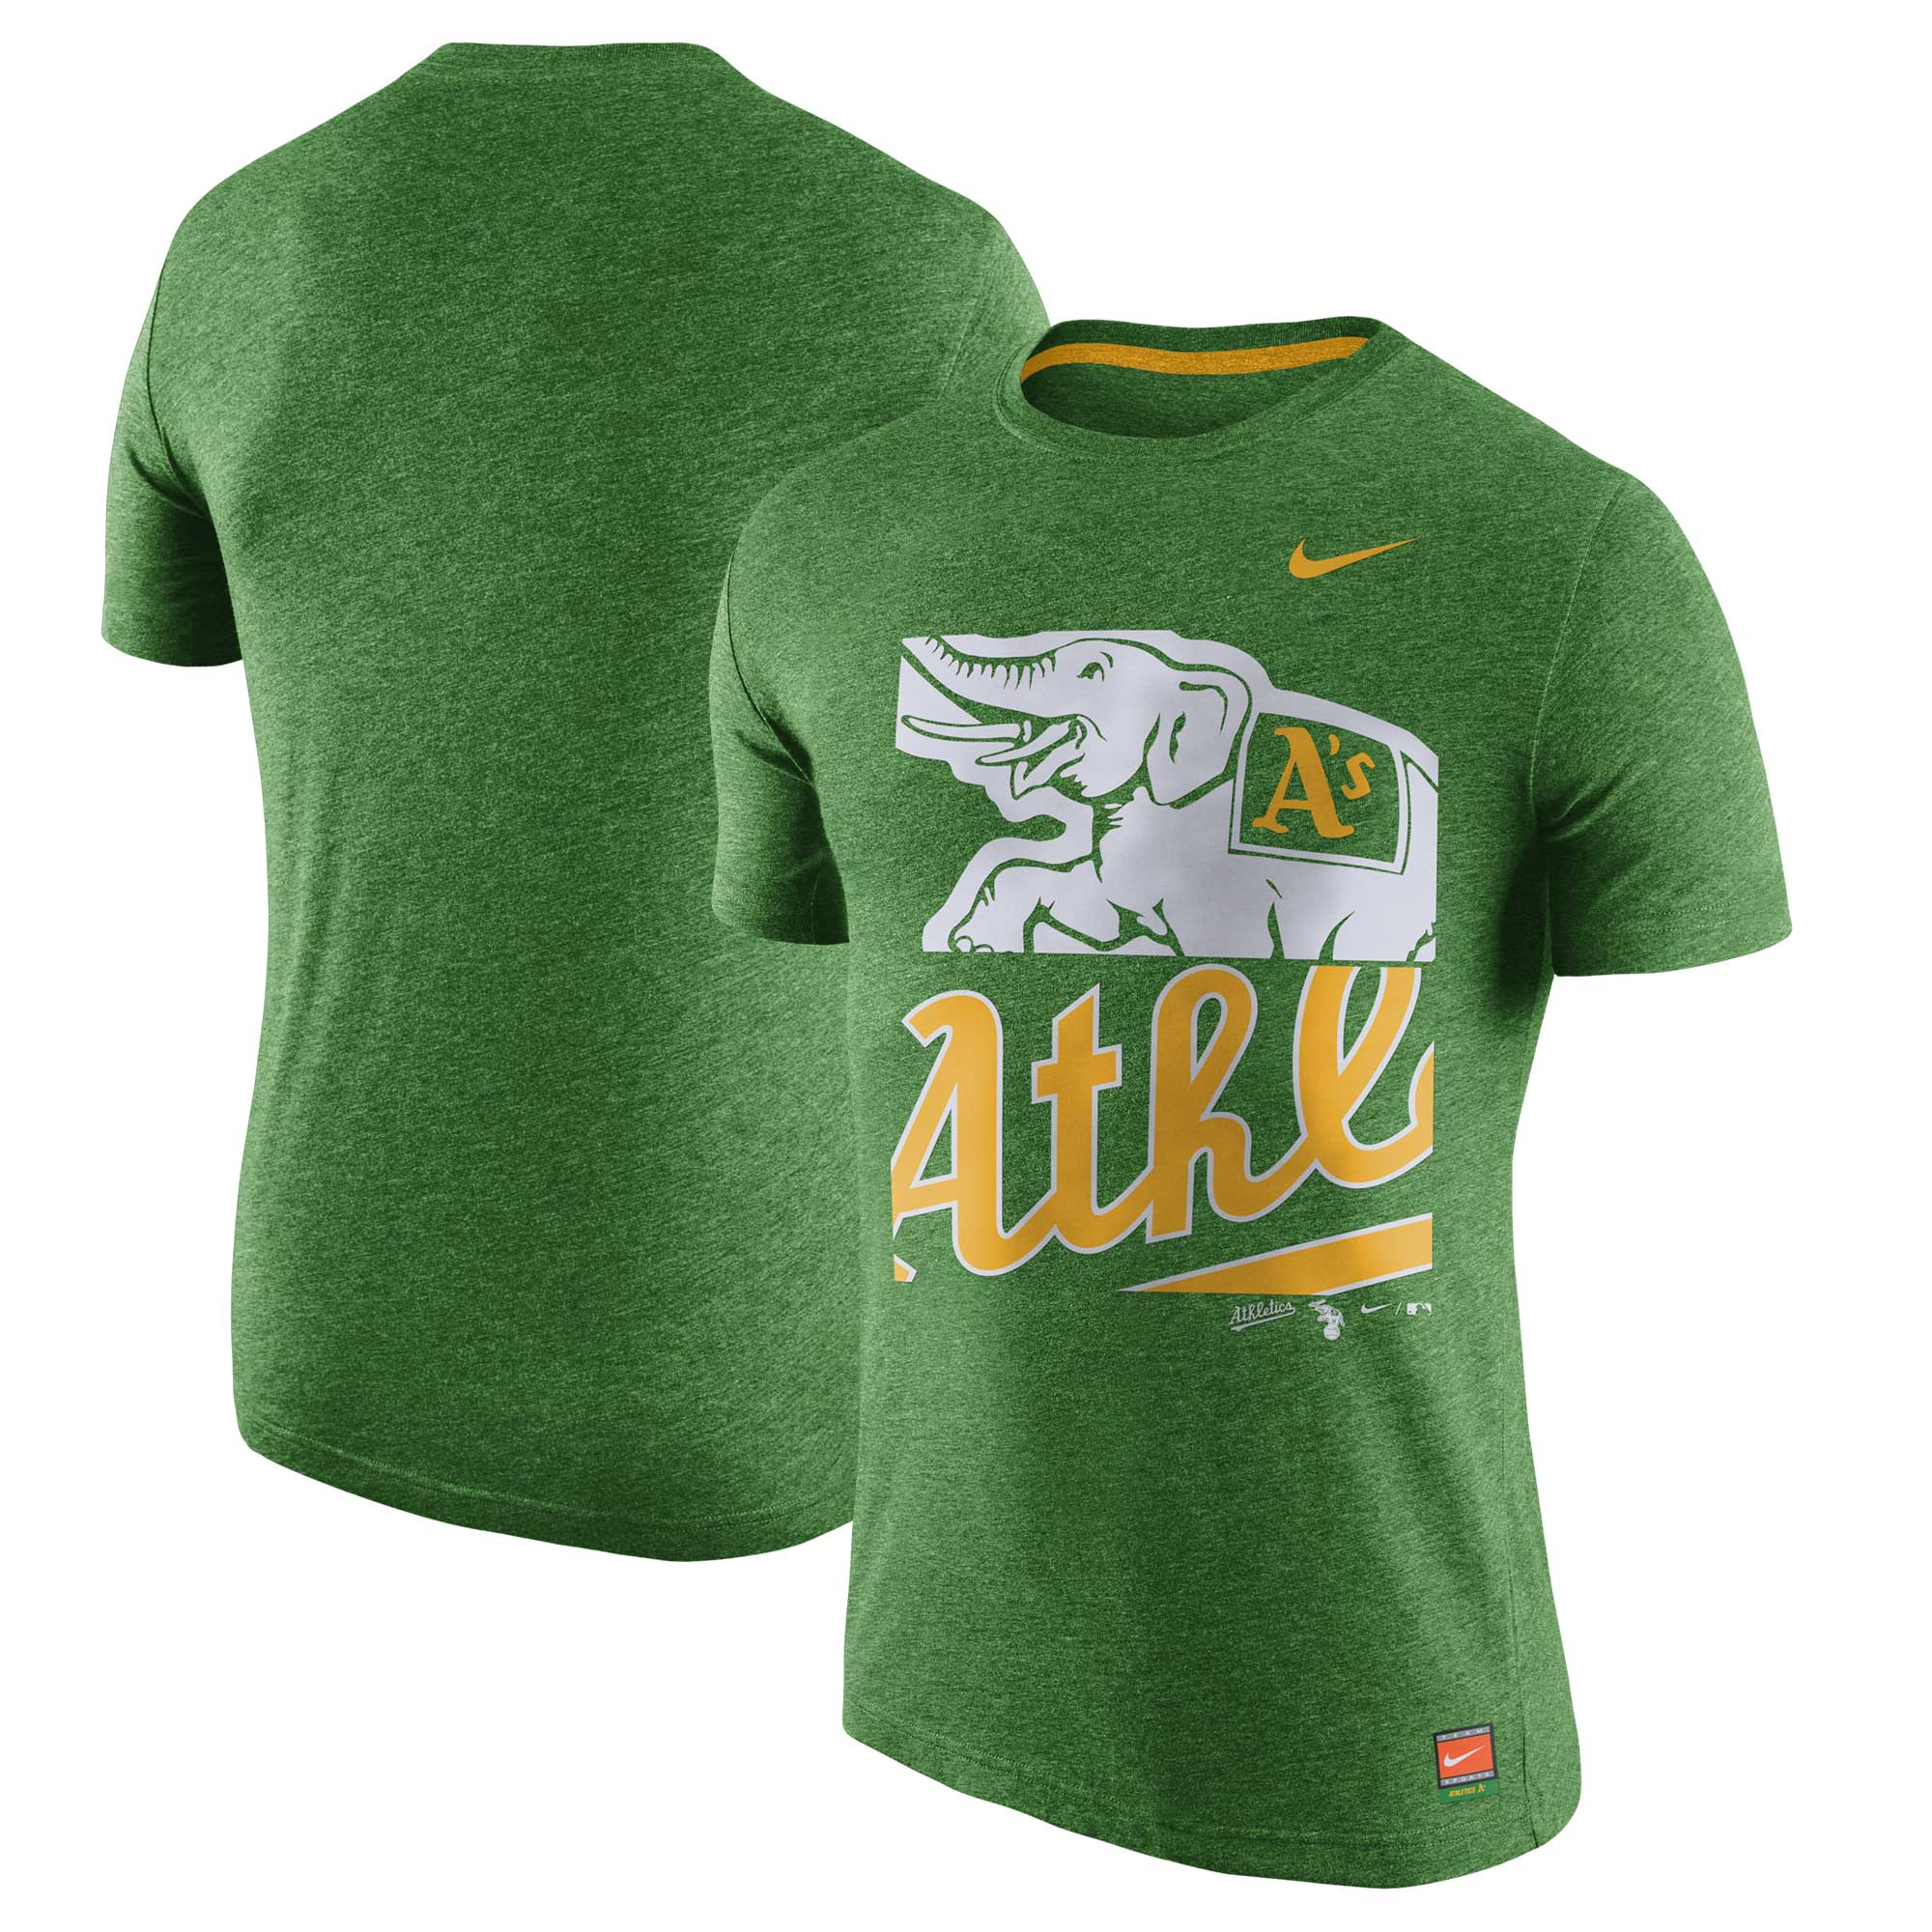 Oakland Athletics Nike Cooperstown Collection Logo Tri-Blend T-Shirt - Heathered Green